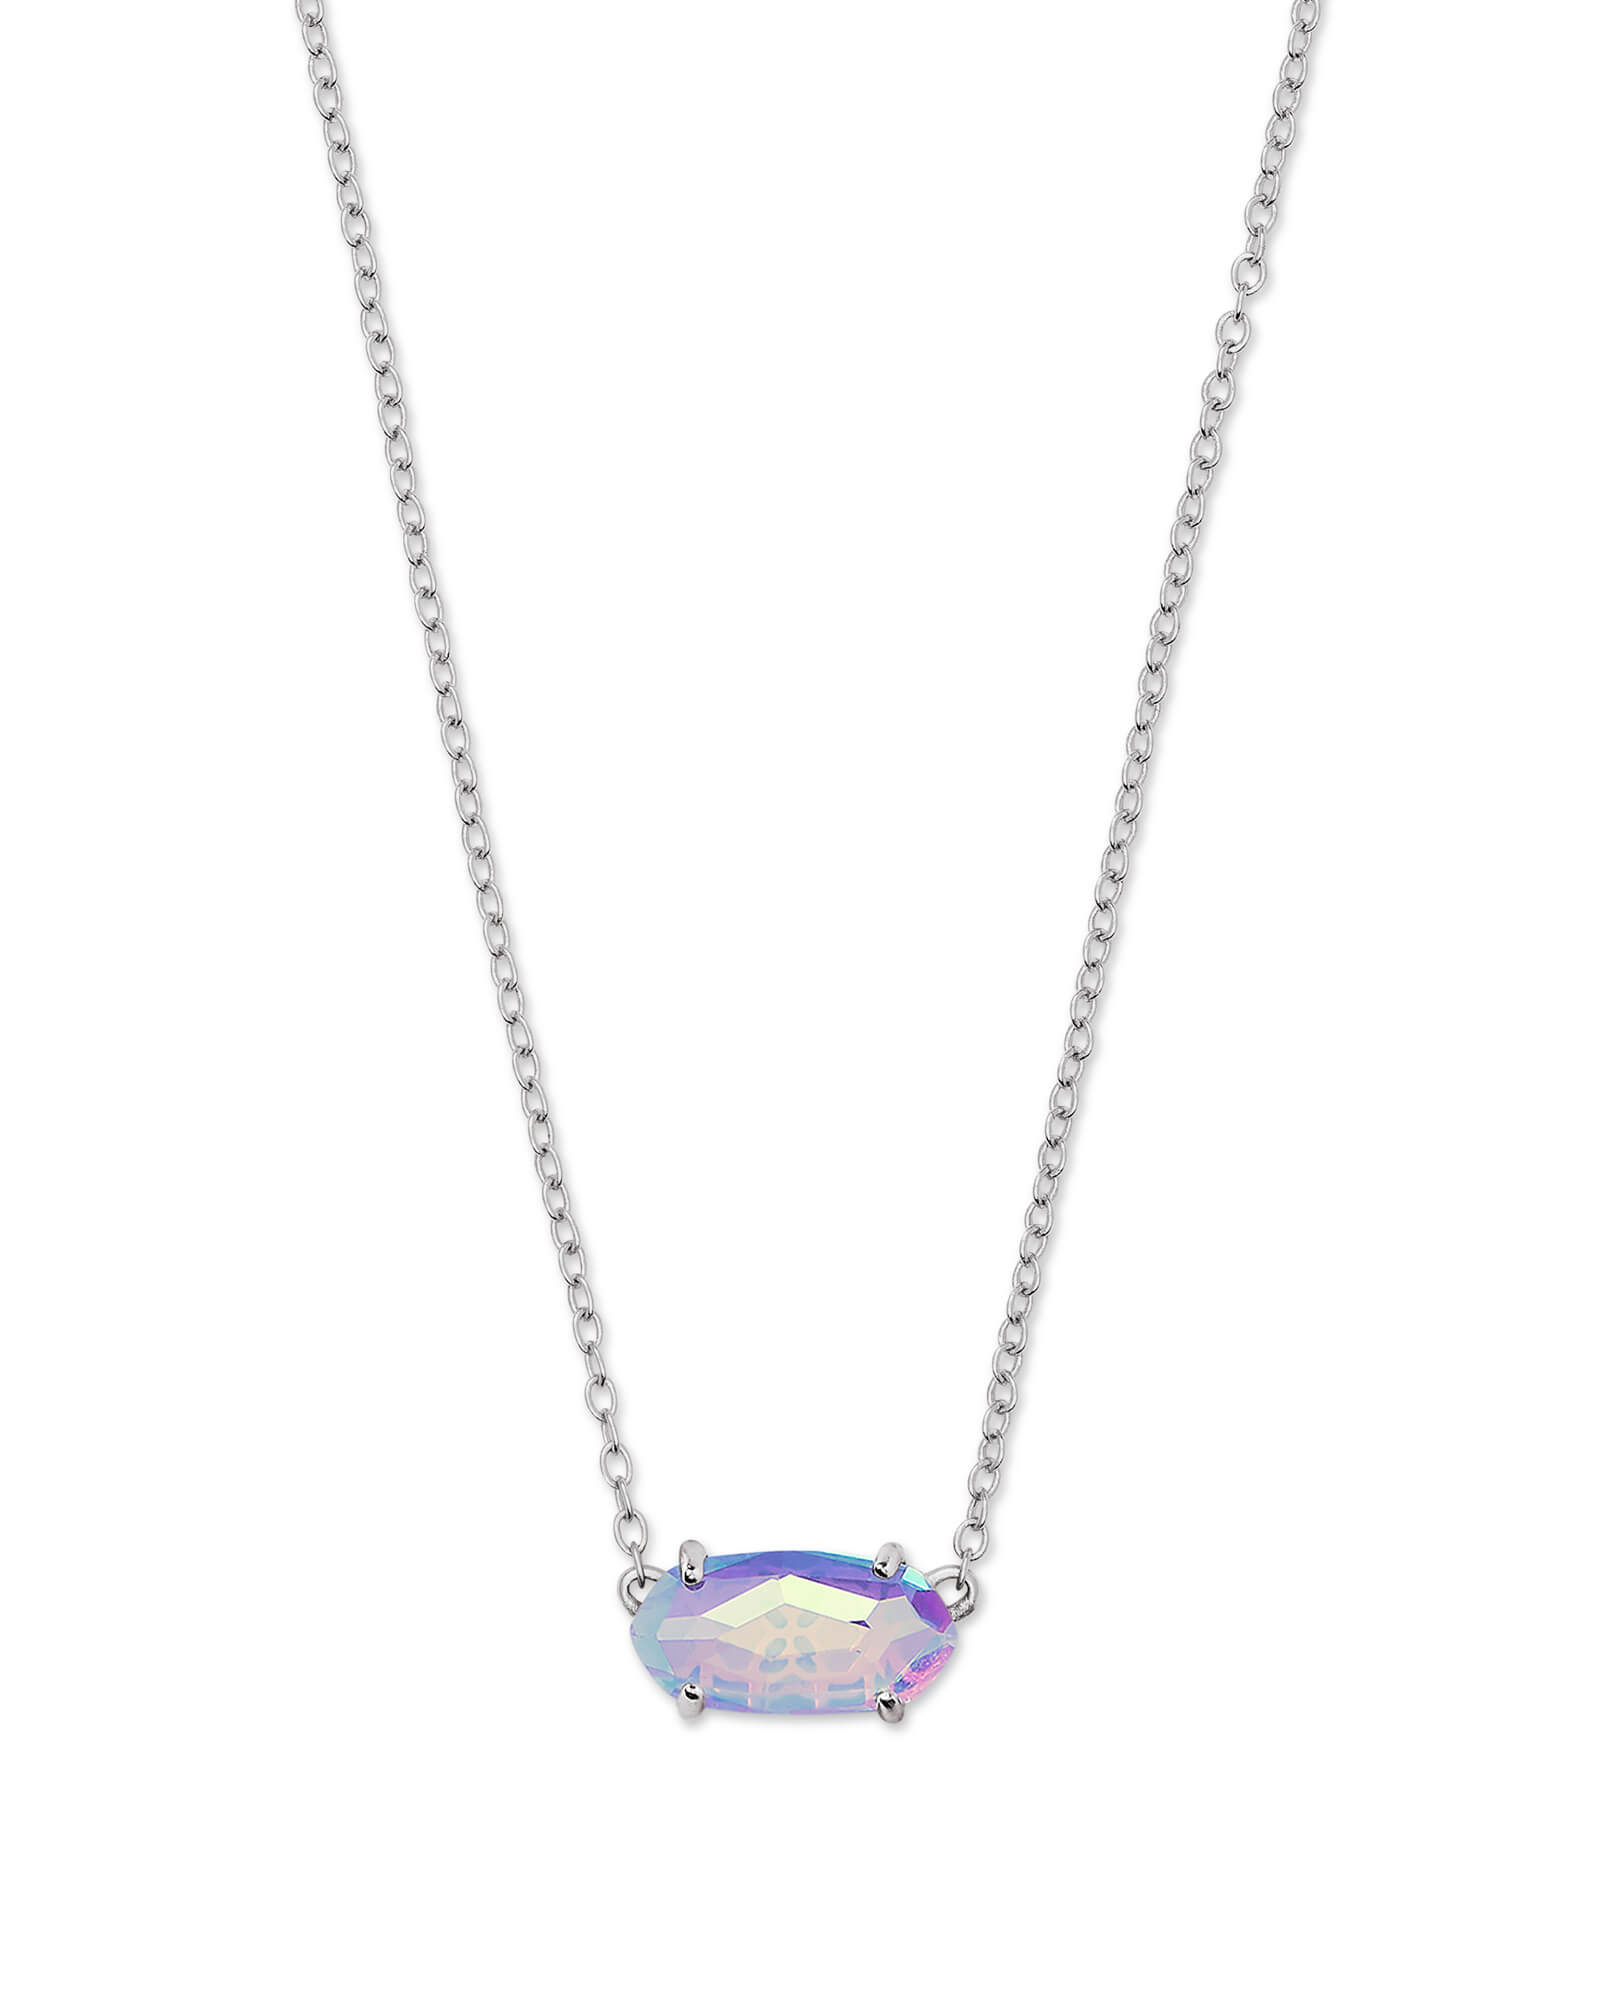 a20673f3d10613 Ever Silver Pendant Necklace in Gray Dichroic Glass | Kendra Scott